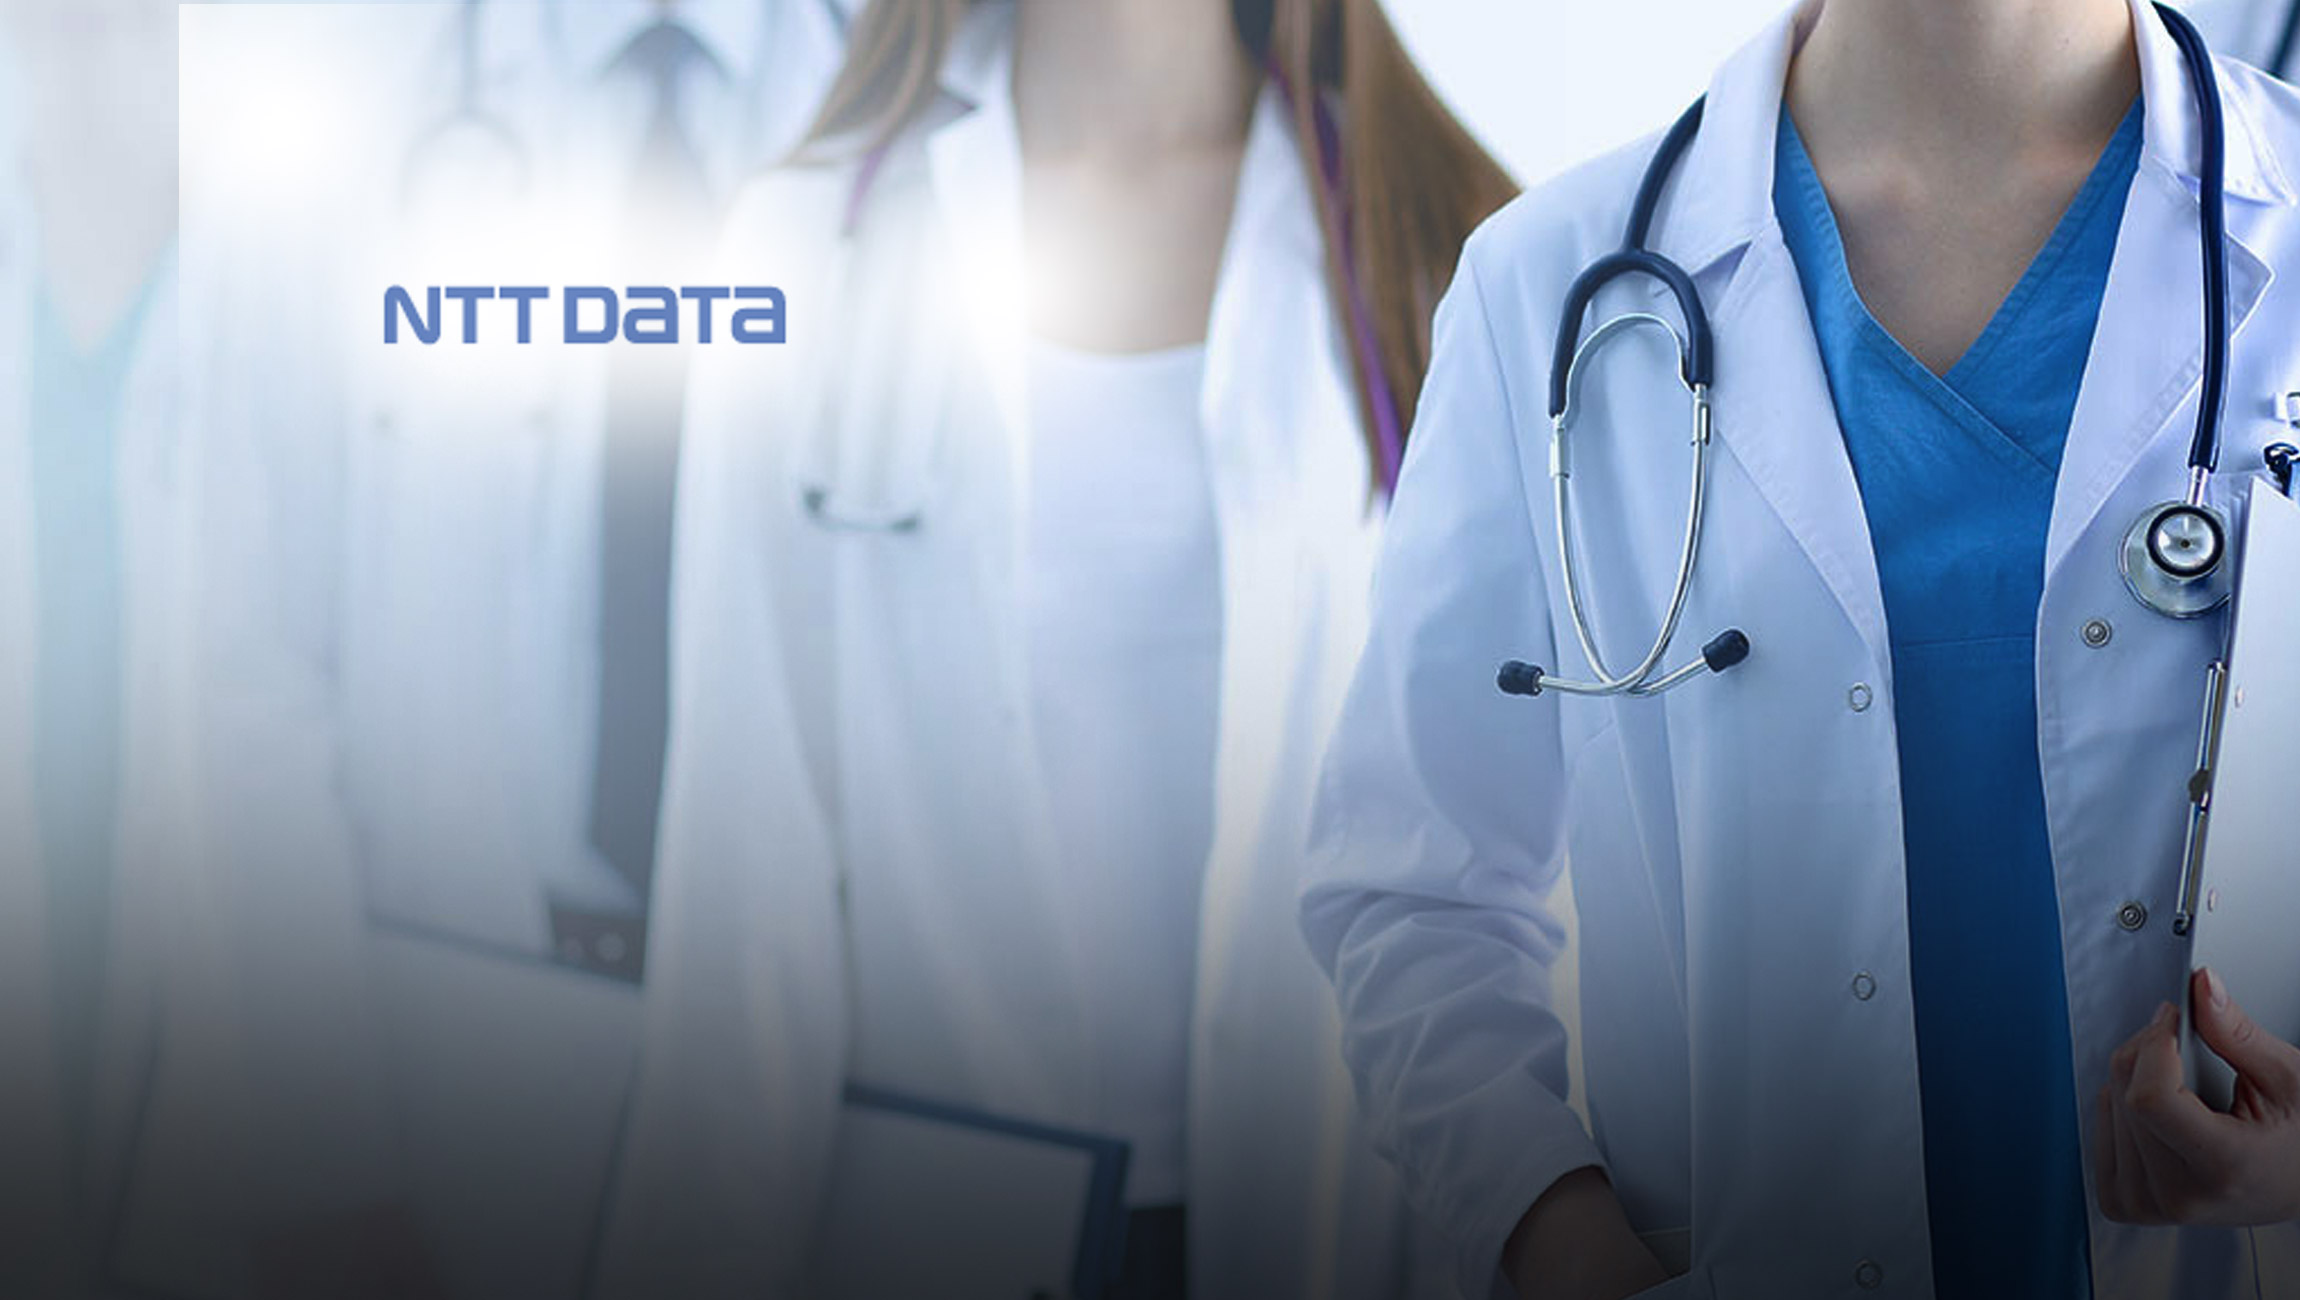 NTT DATA Simplifies Clients' Digital Healthcare Journey with Powerful New Alliance